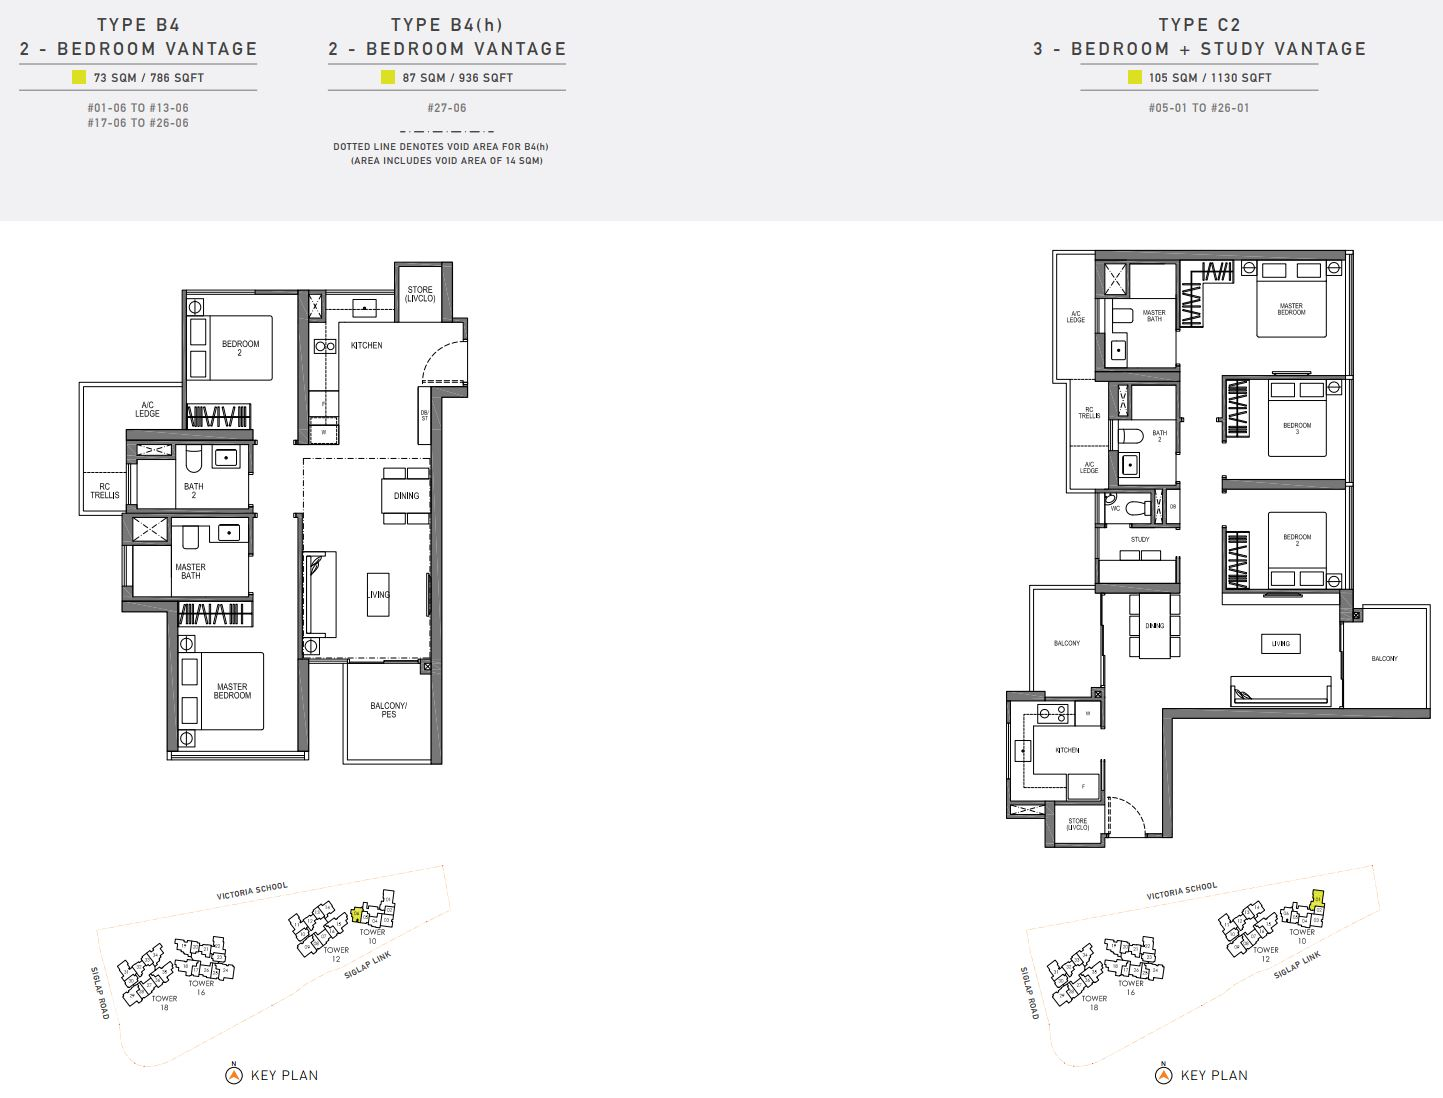 Seaside Residences FloorPlan - 2 & 3 Bedroom Vantage